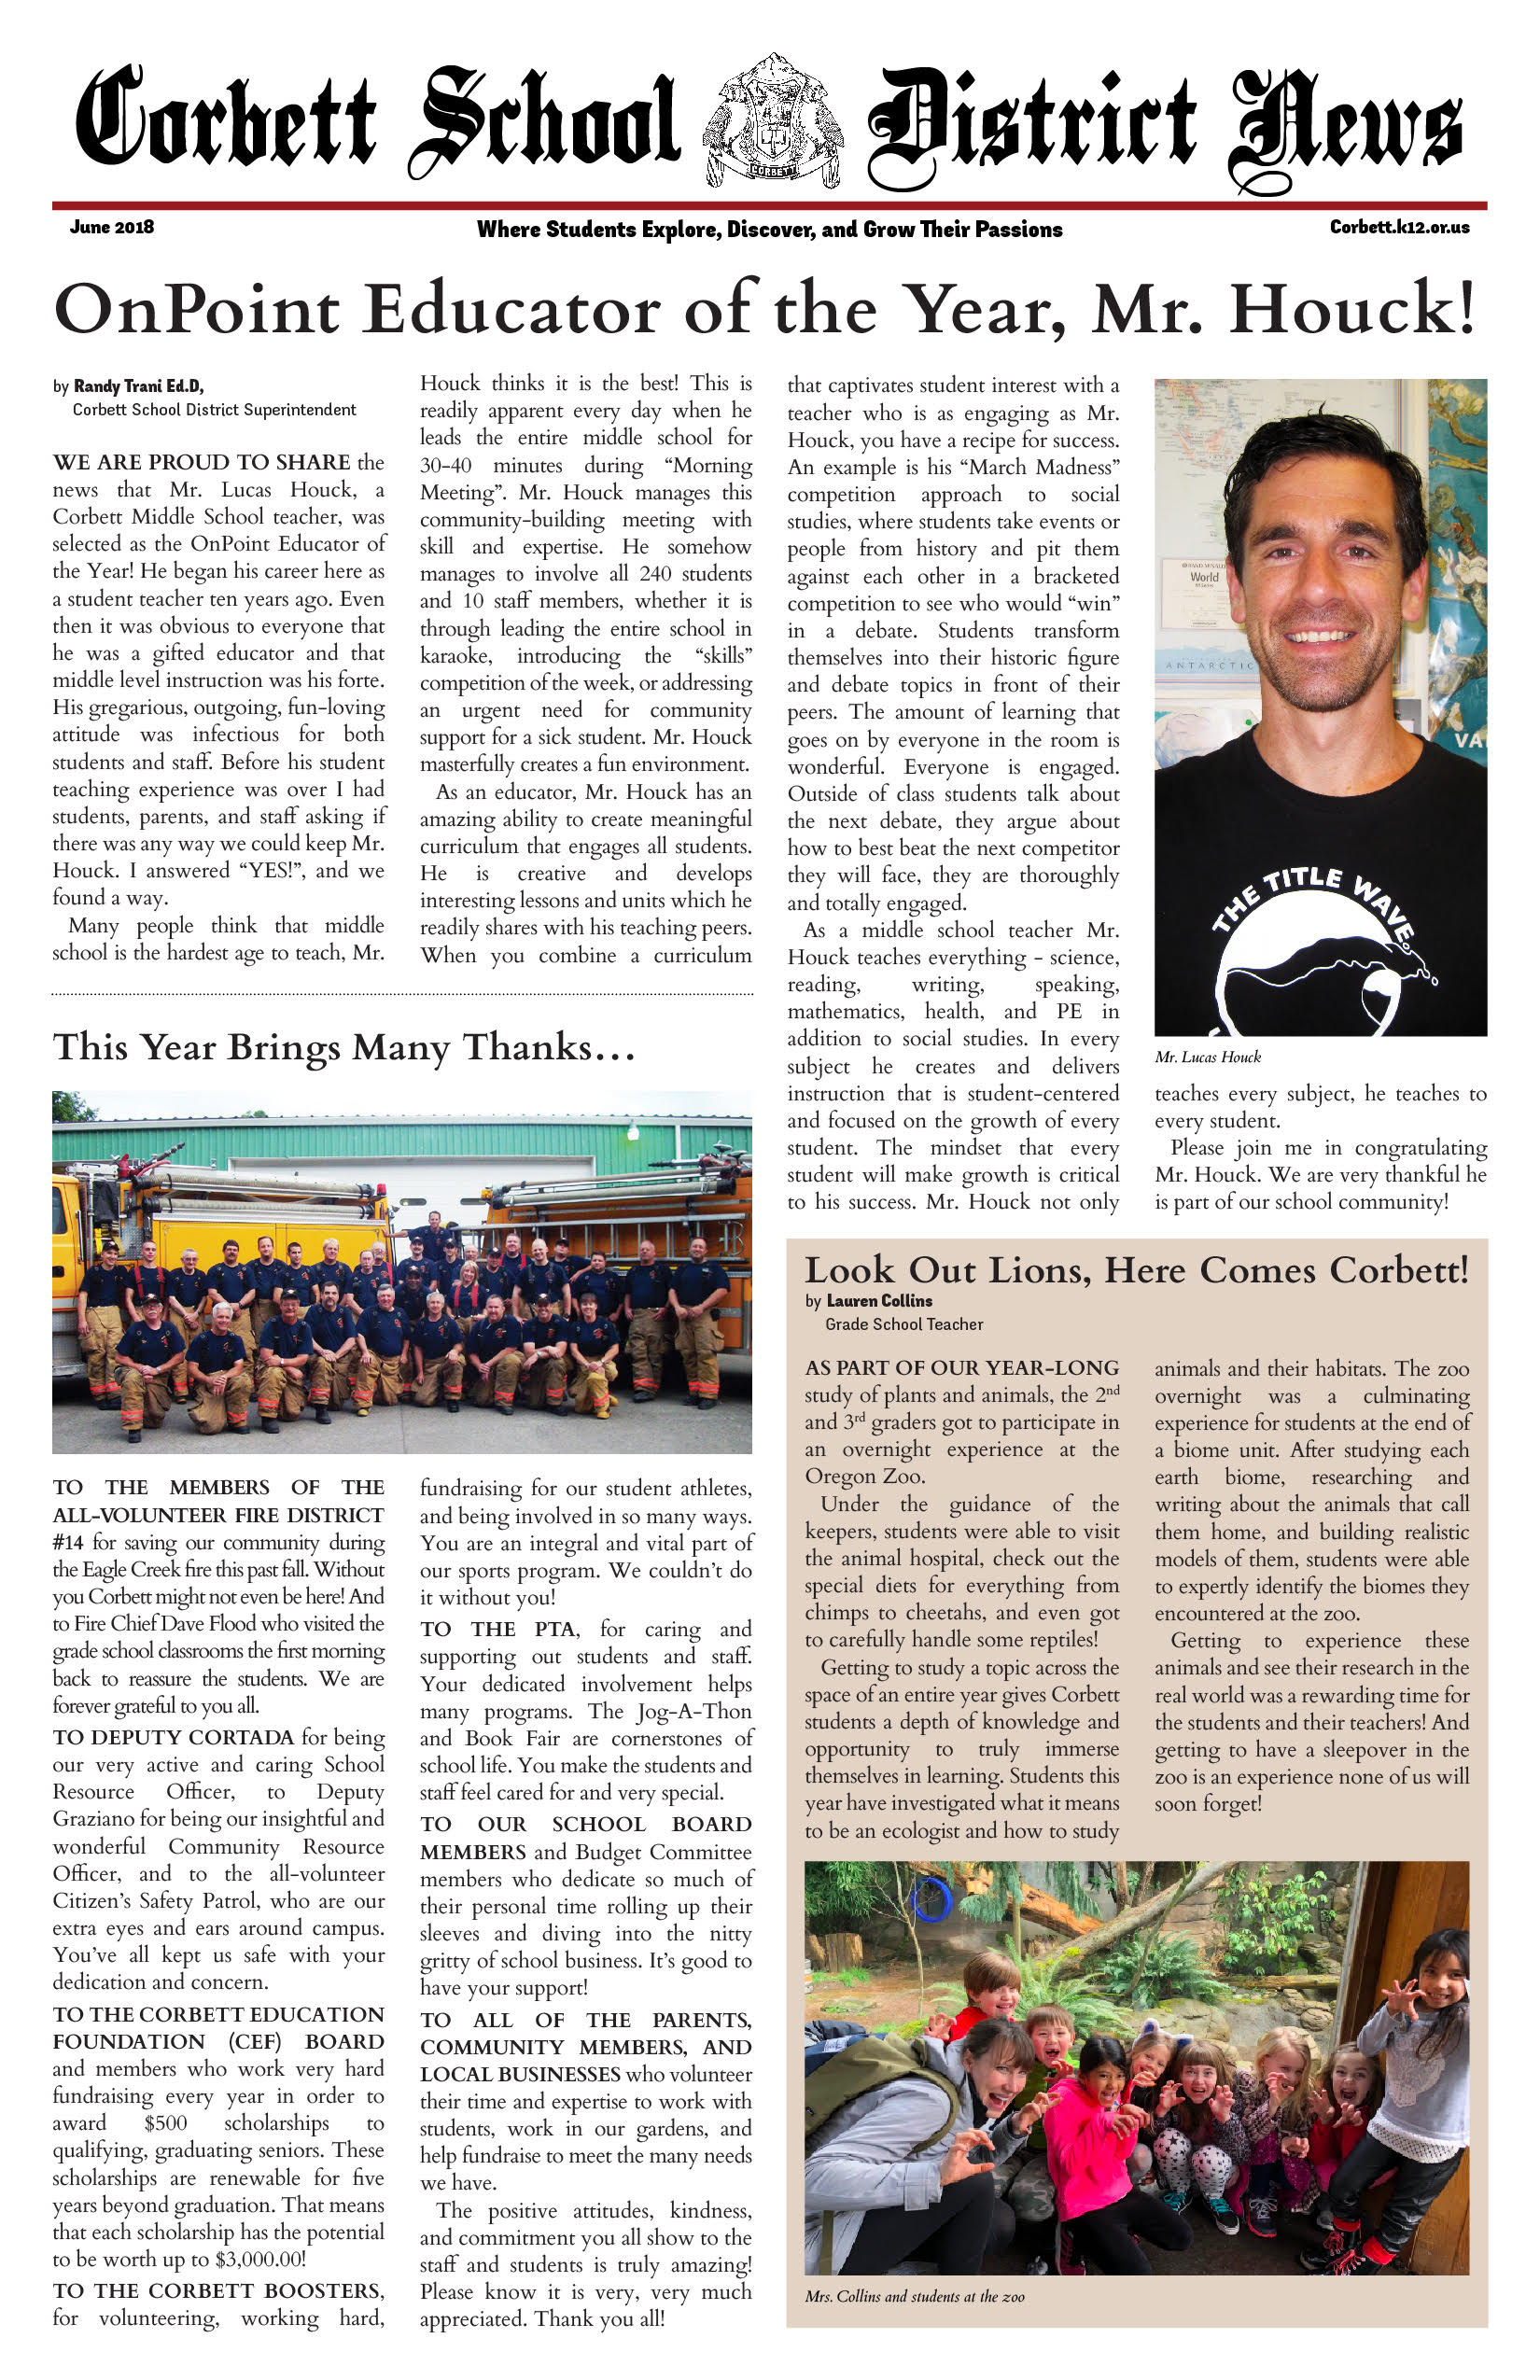 Heres Our June School Newspaper That Was Mailed To The Community A Few Weeks Ago Enjoy Reading About Our Students School Clubs And Community